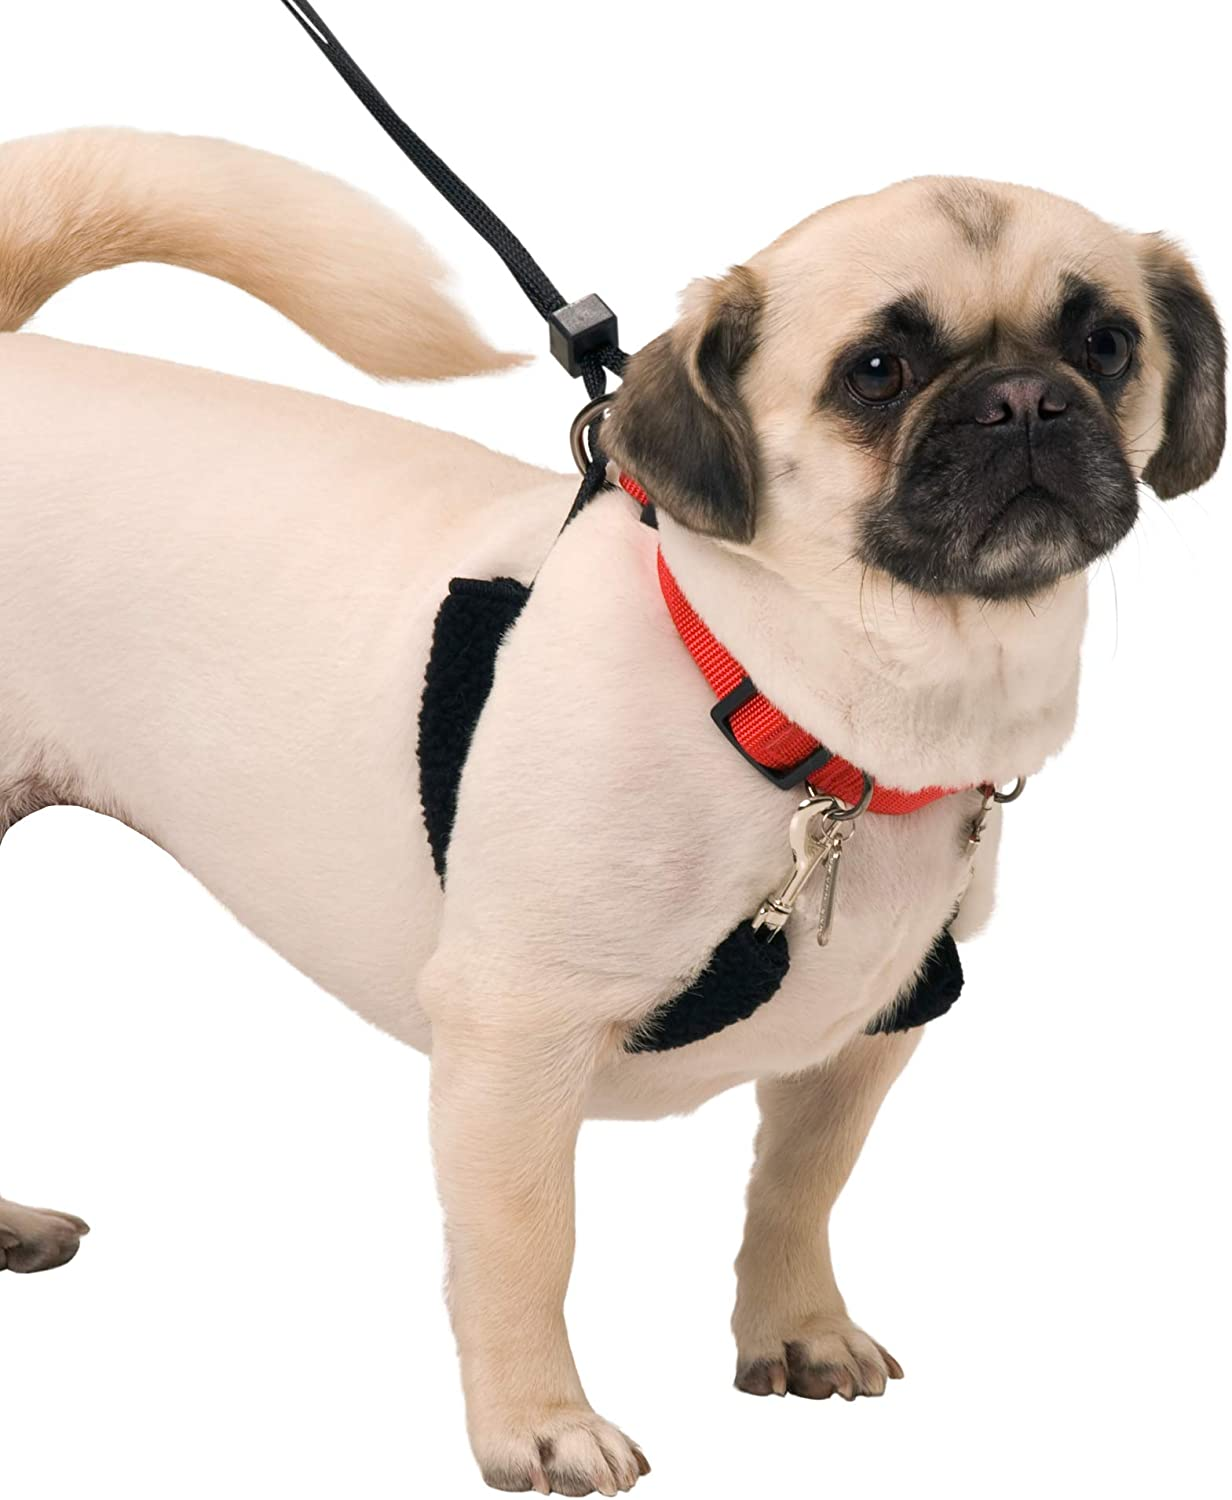 Dog-Halter-Non-Pull-No-Choke-Humane-Pet-Training-Halter-Harness